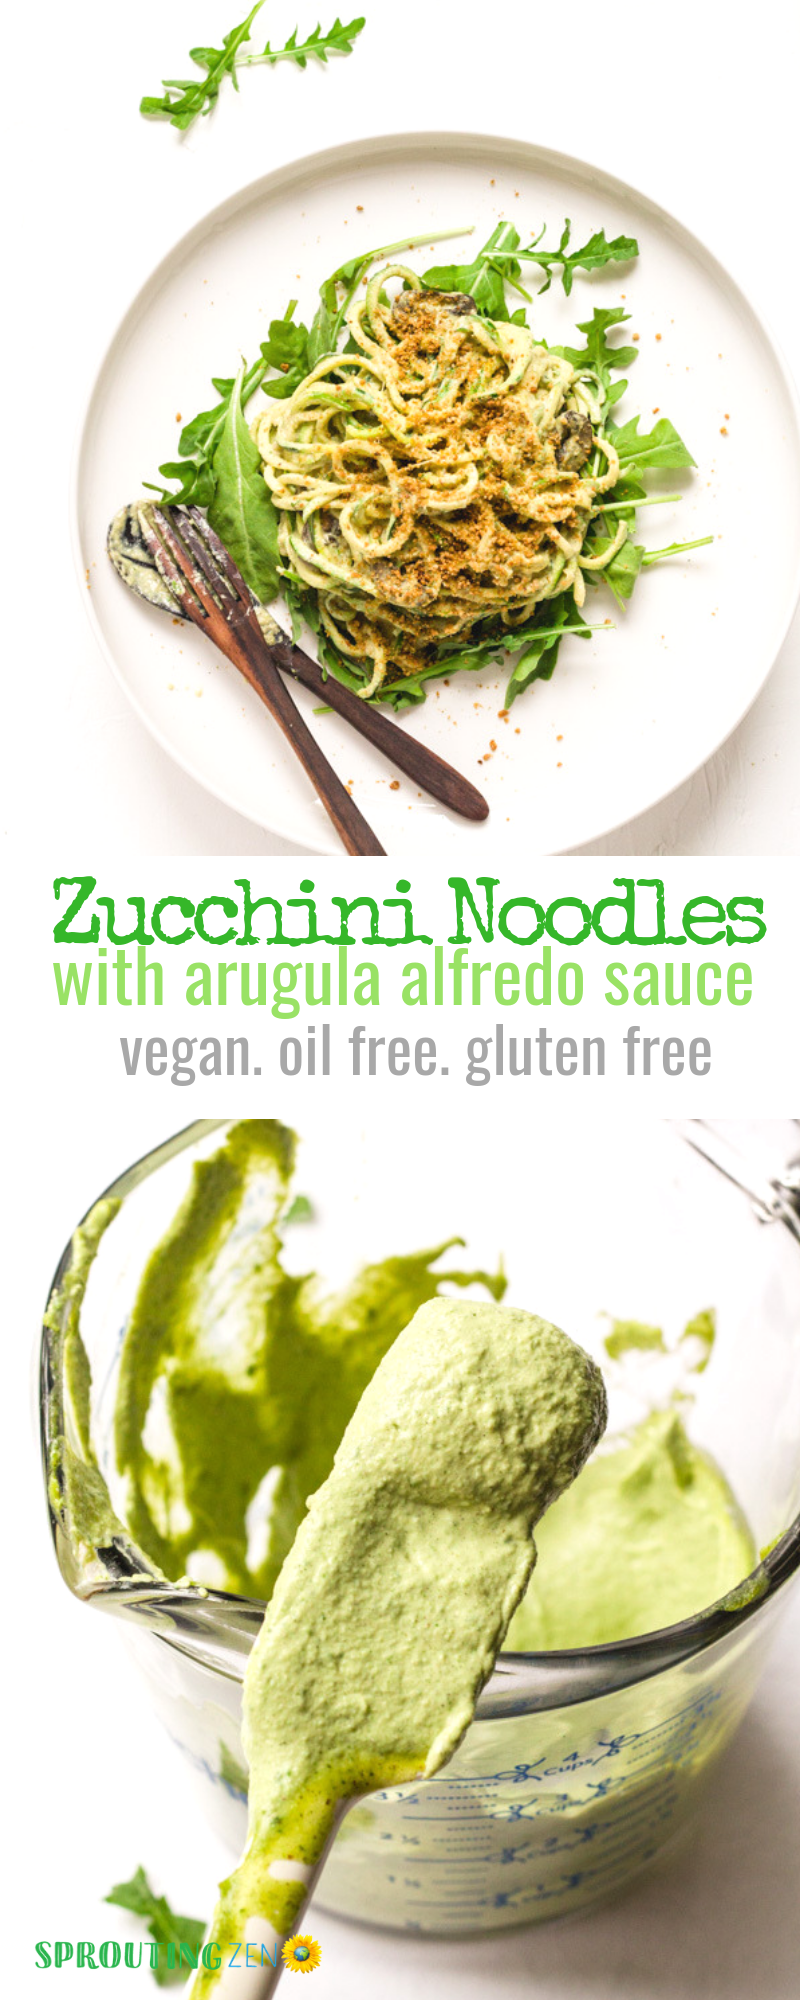 Vegan zucchini noodles (zoodles!) topped with an oil free creamy arugula alfredo sauce. Enjoy them raw or cooked - perfect lunch or dinner idea! #vegan #plantbased #healthy